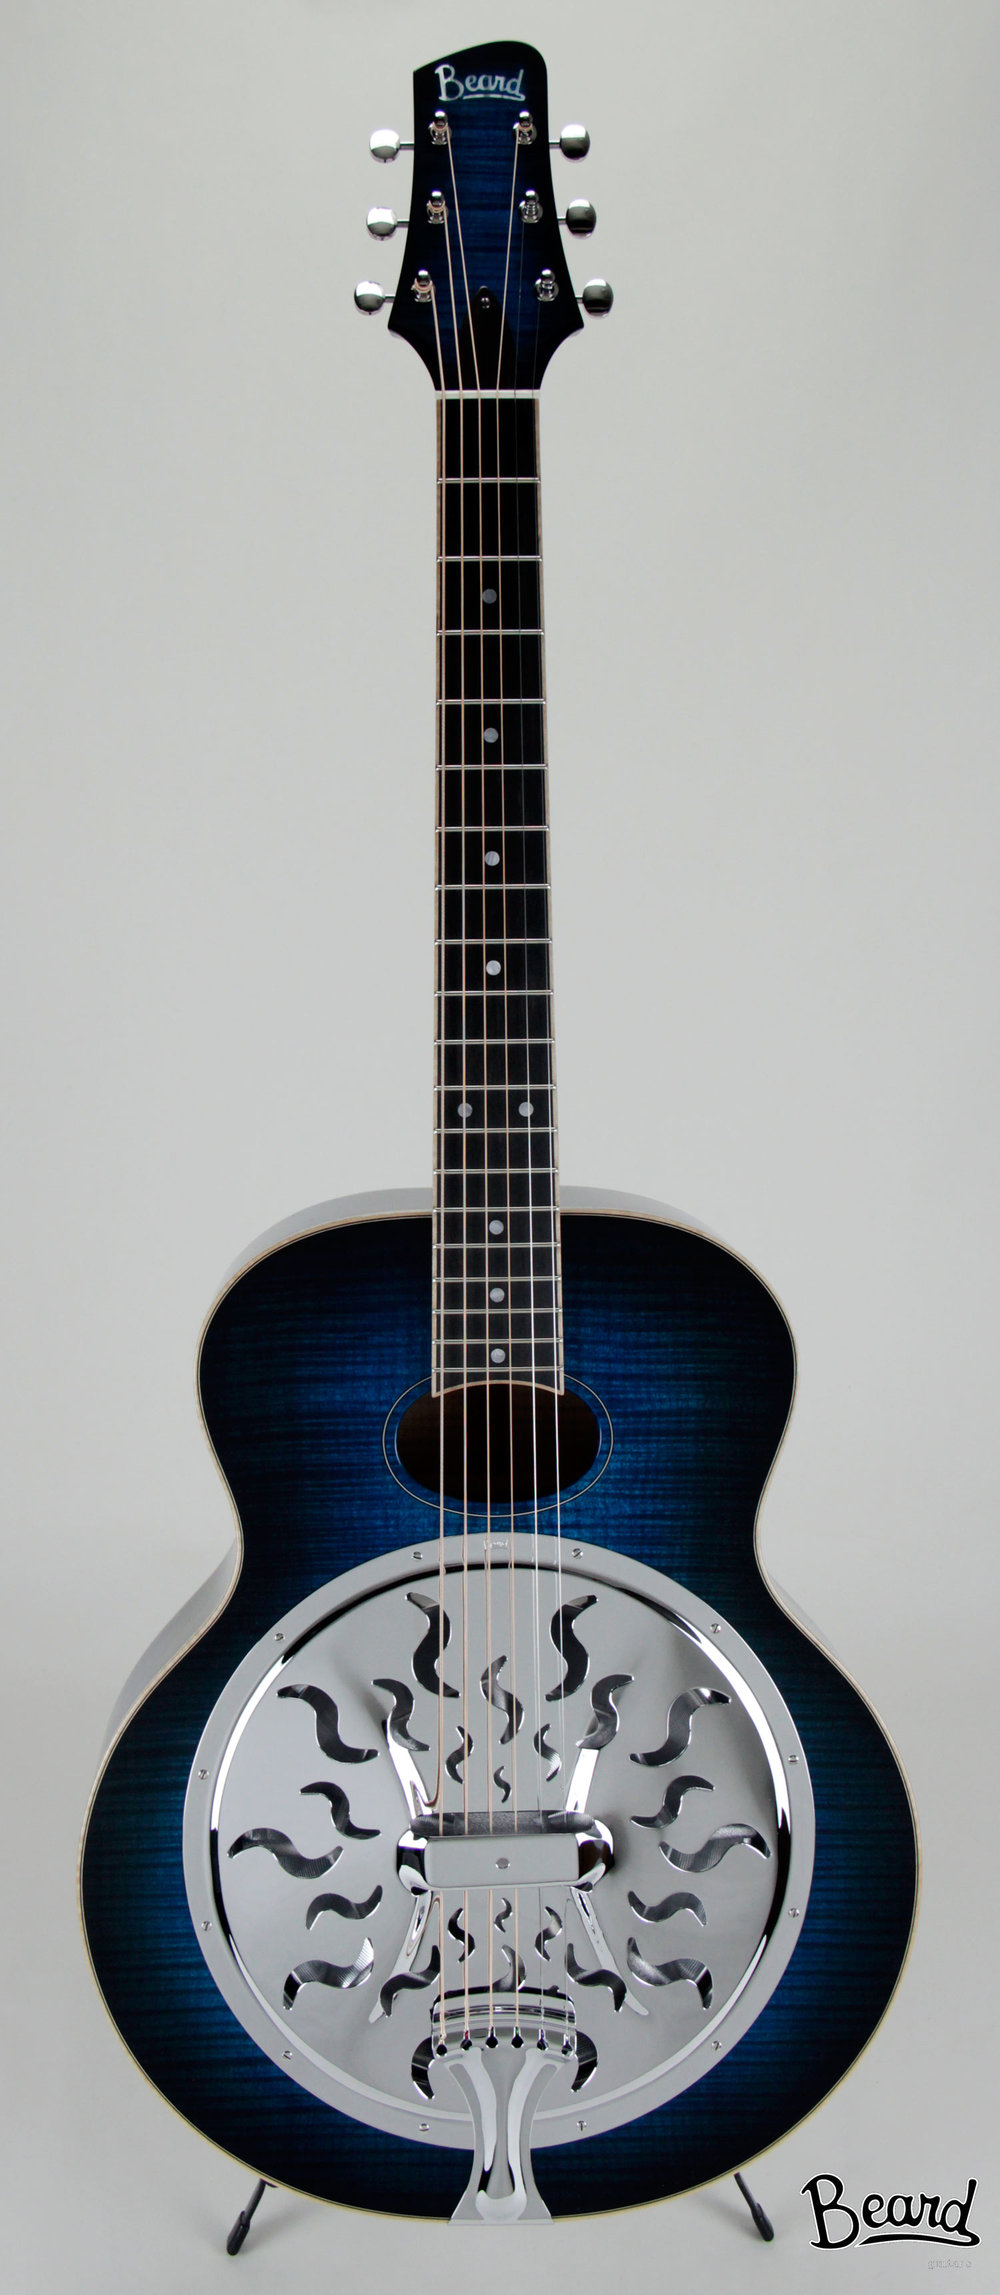 A Model Maple Midnight Blueburst